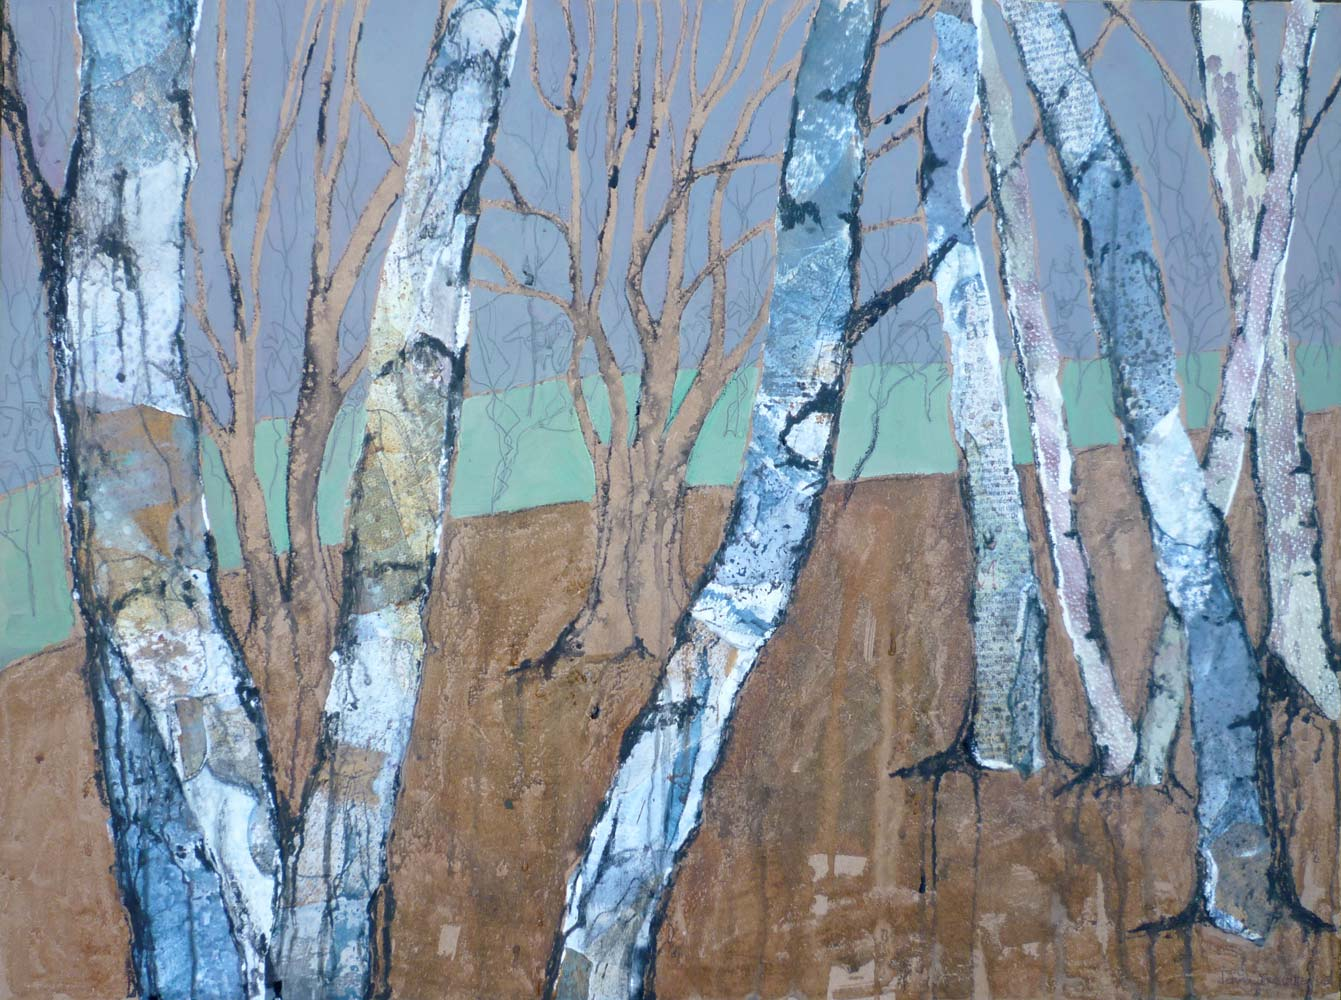 Trunks of silver birches